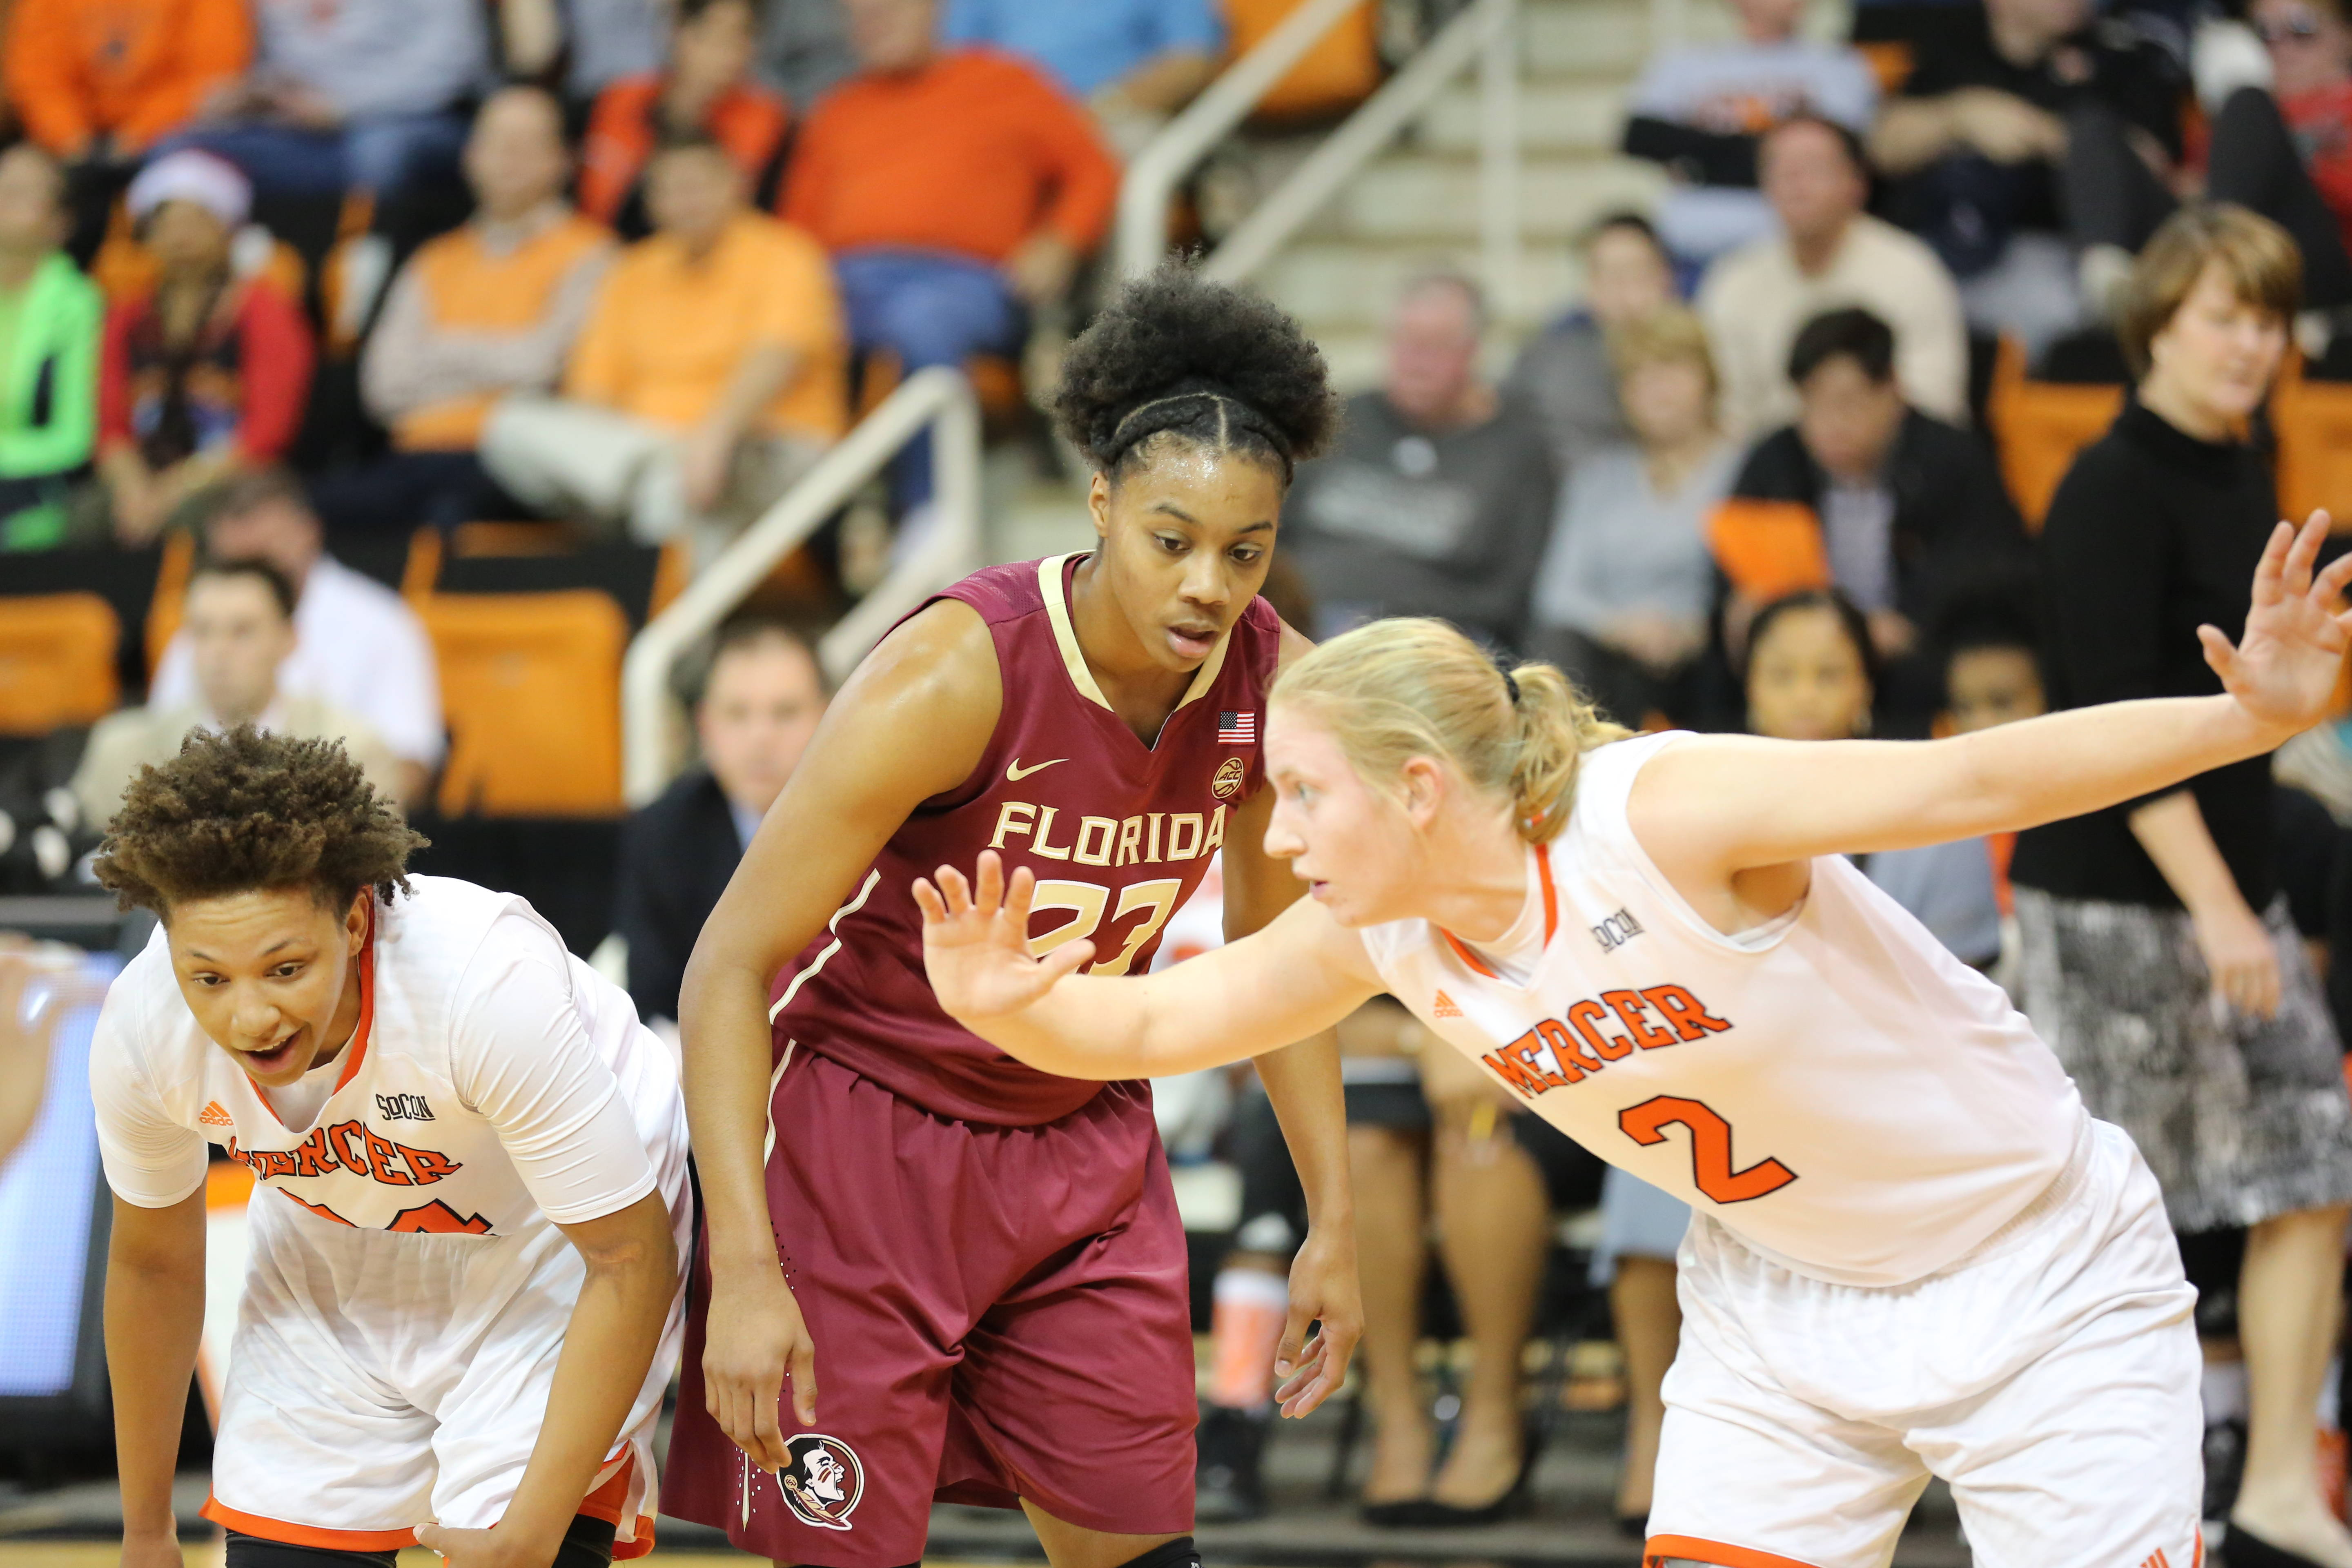 On Dec. 21, senior forward and Macon, Ga., native Ivey Slaughter received quite the homecoming when FSU traveled to play Mercer.